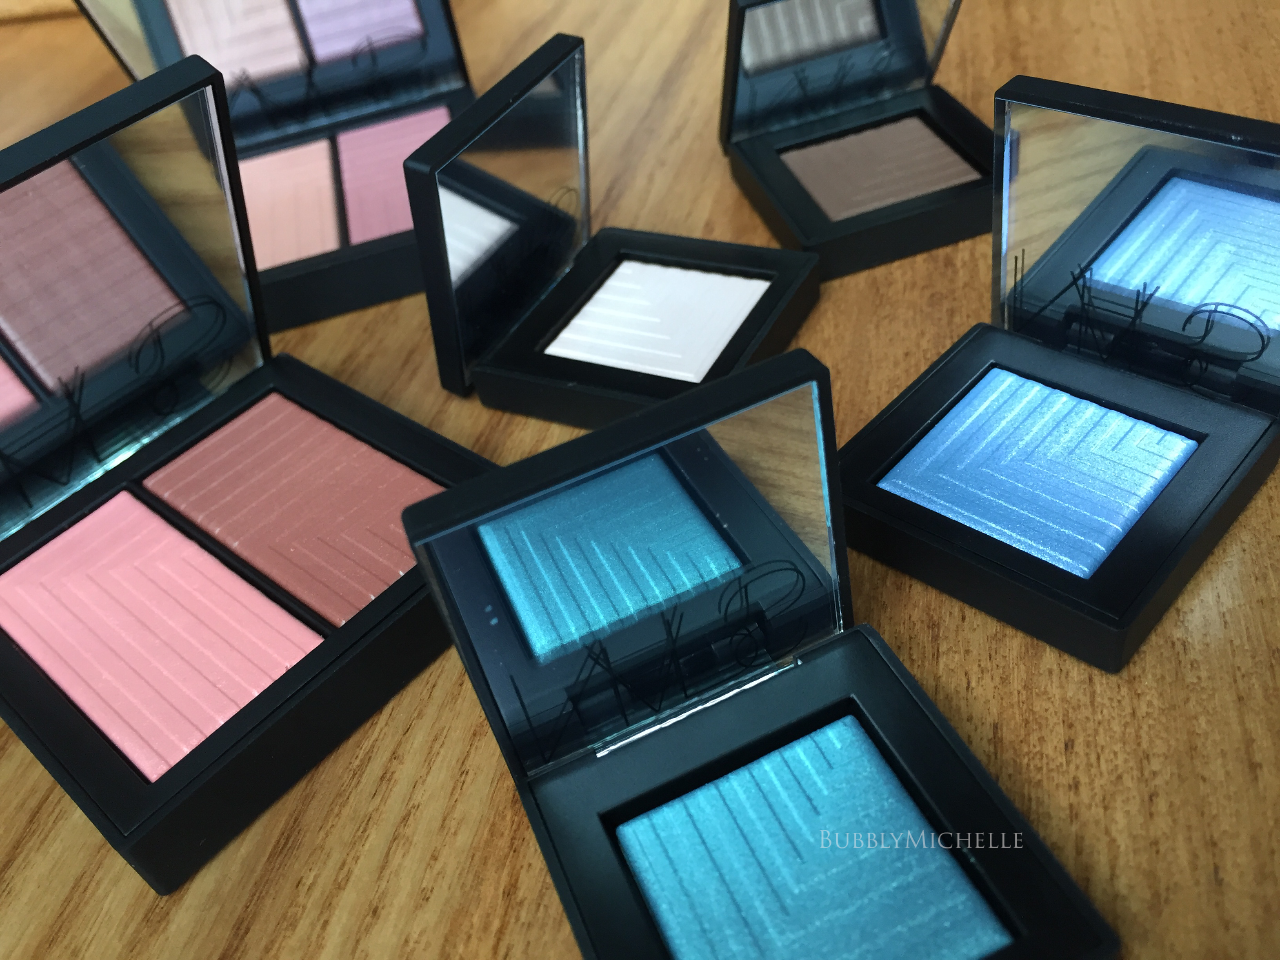 Quick post on NARS summer today! A drool-worthy collection I had the privilege of previewing while in Singapore just a few weeks back.I couldn't post any swatches due to the embargo which was ...